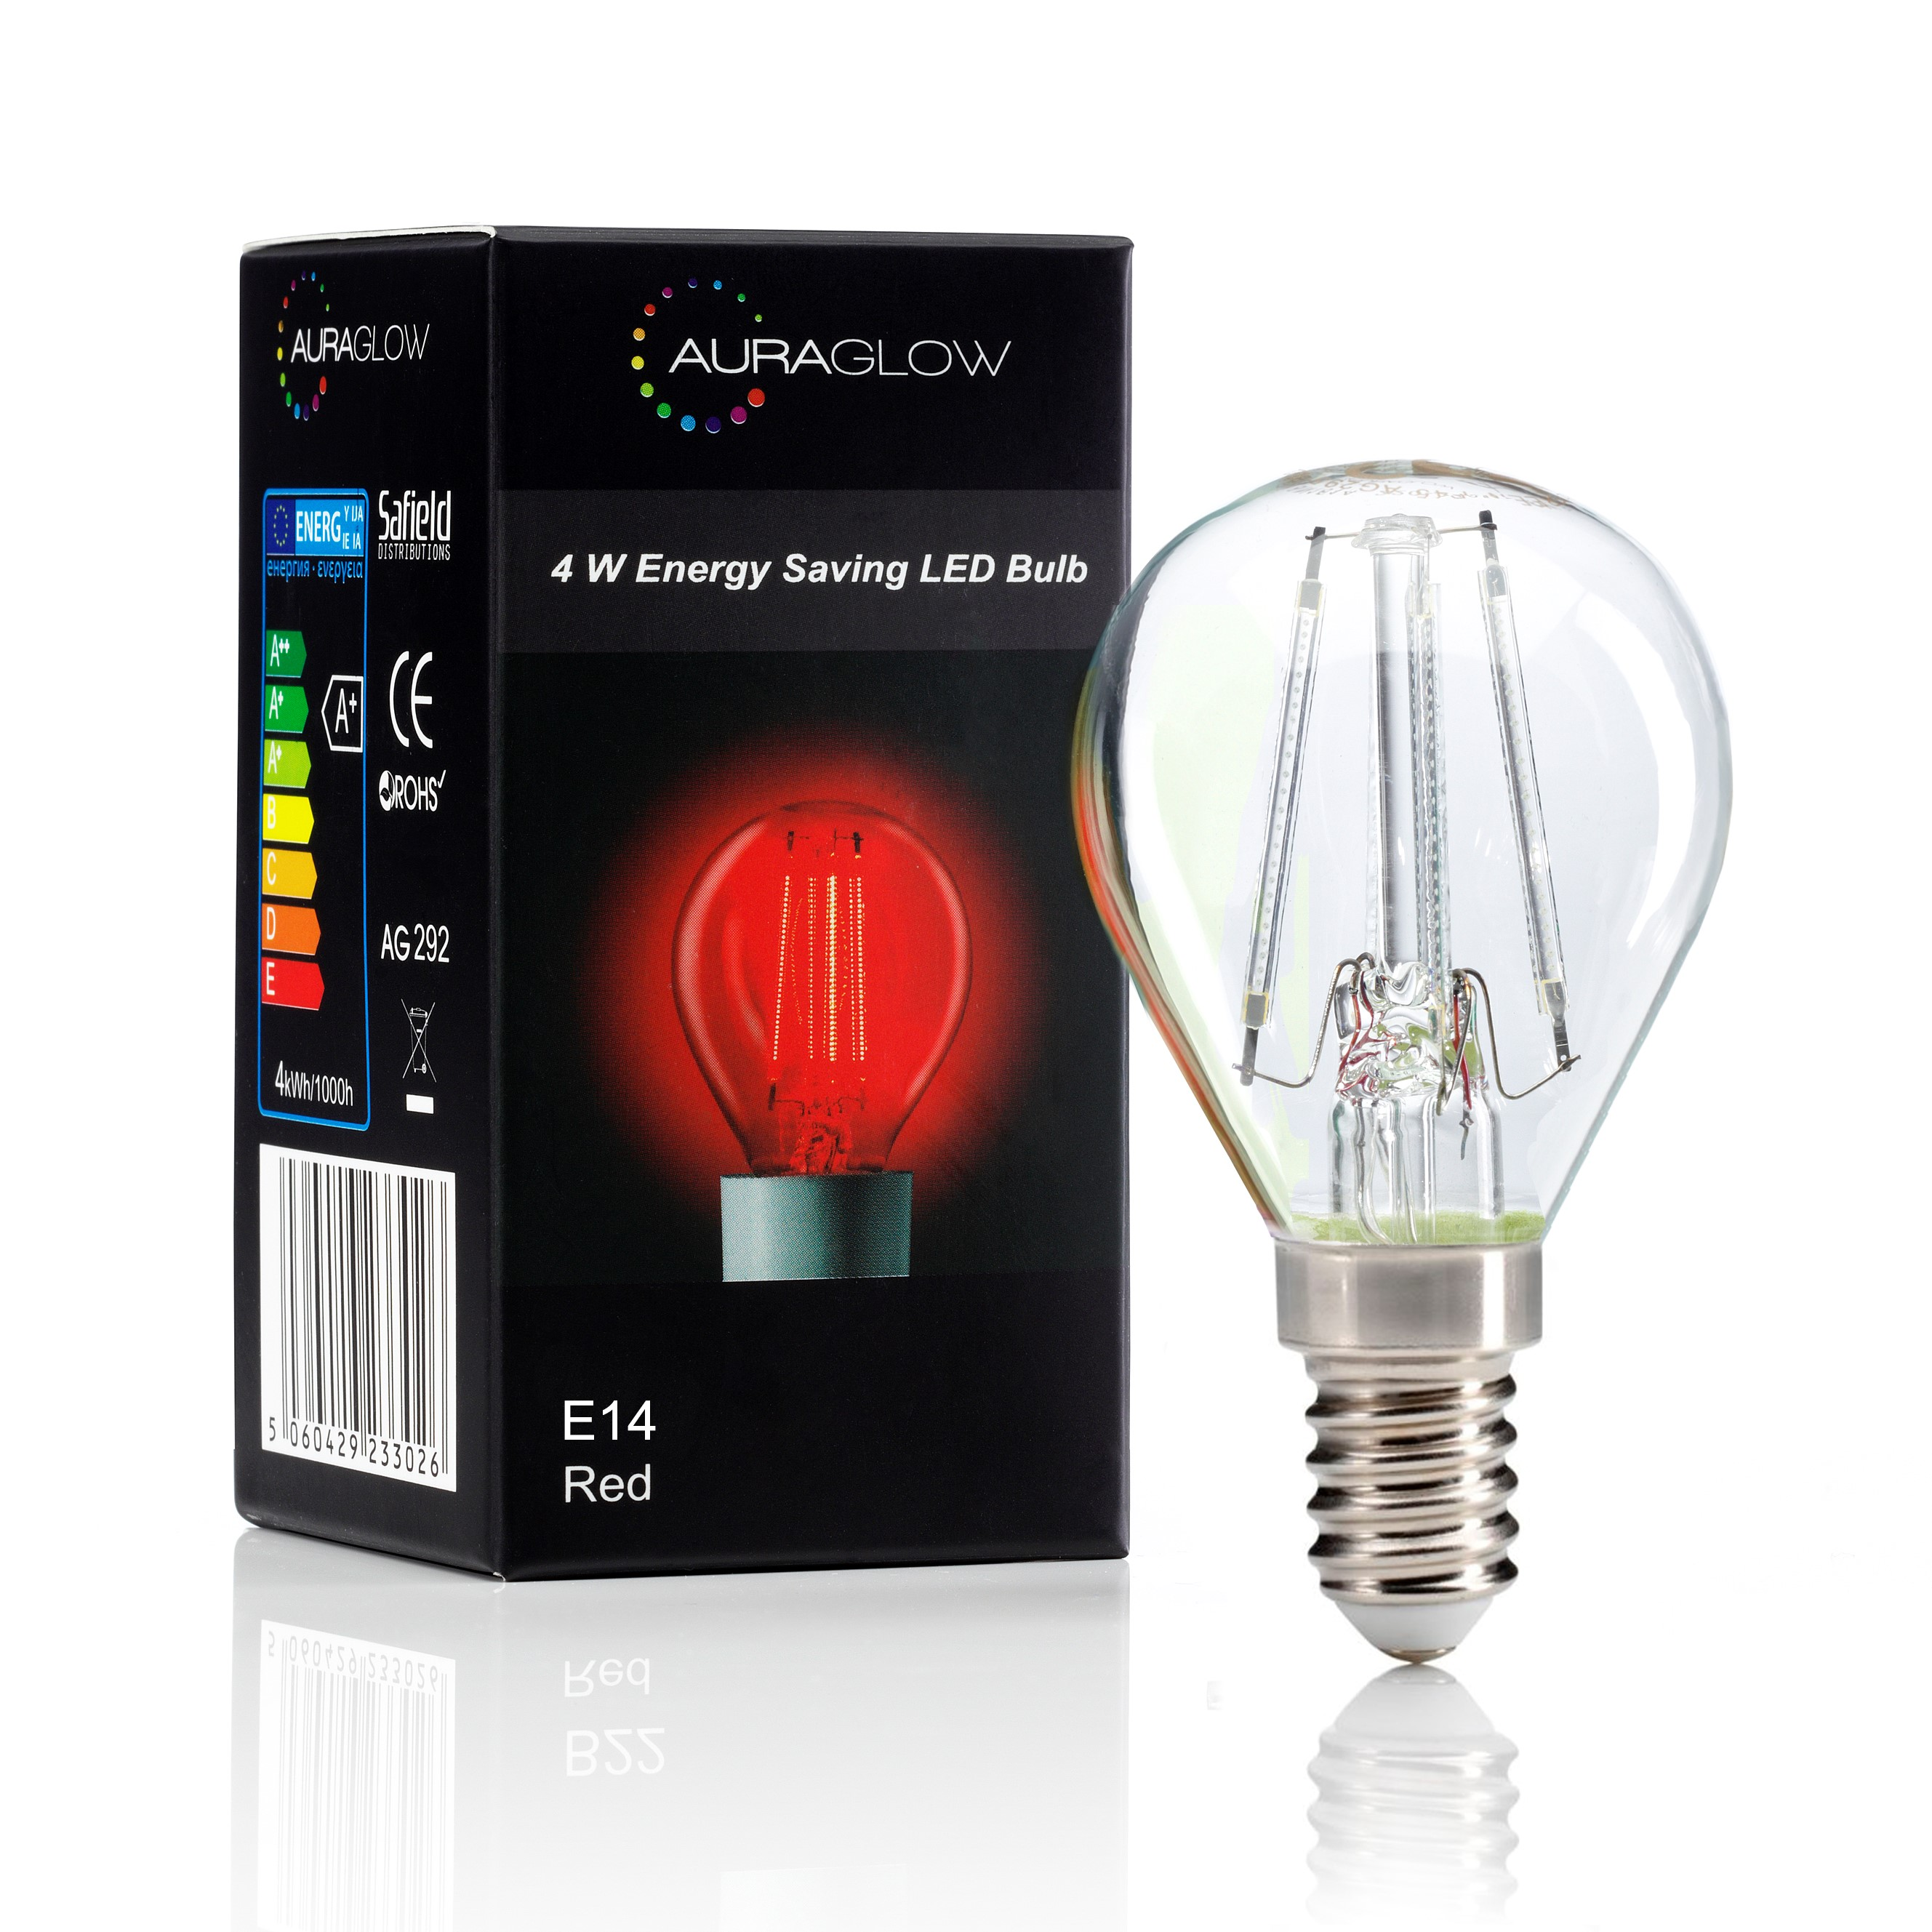 auraglow 4w g45 golf ball filament led vintage light bulb e14 red auraglow led lighting